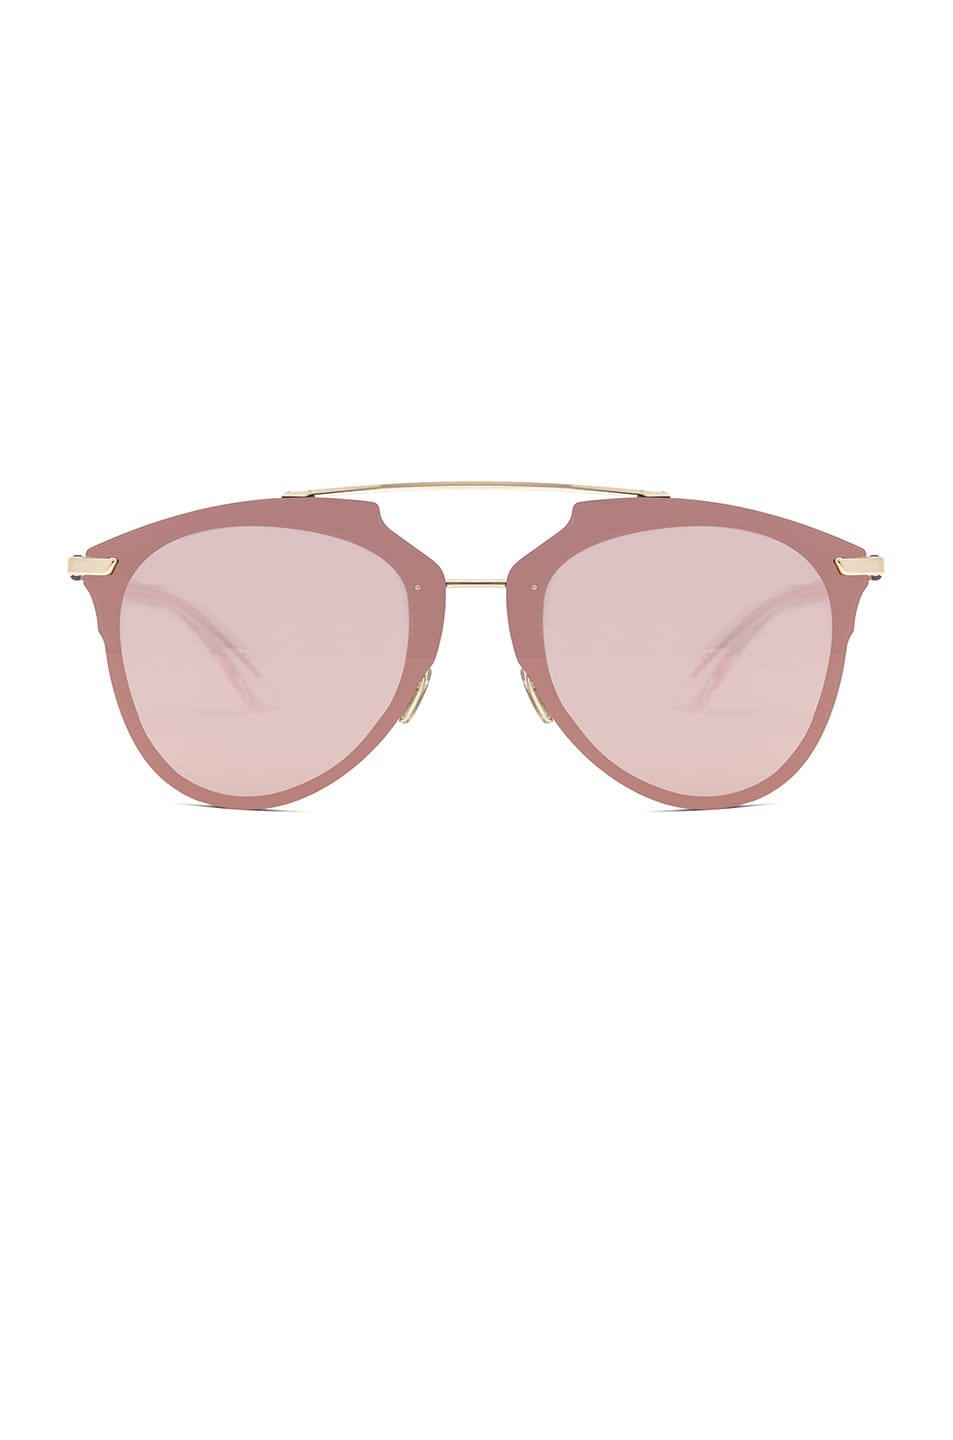 20fb53486530 Dior Reflected Sunglasses  Dior Reflected Sunglasses ...